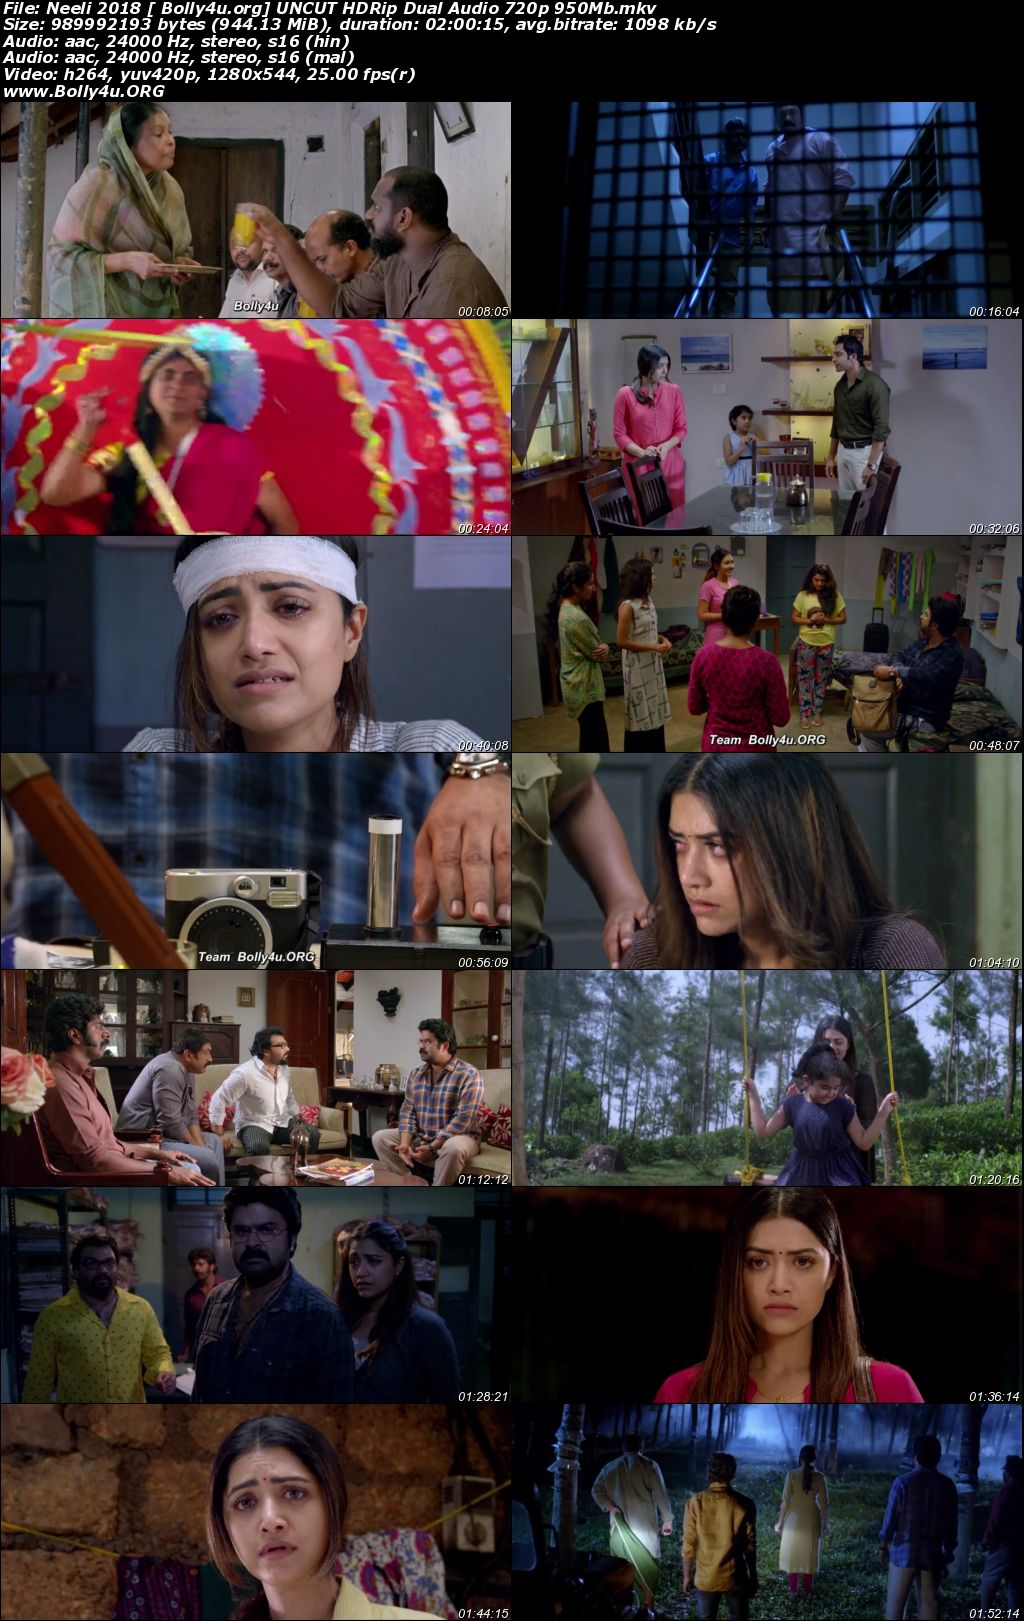 Neeli 2018 HDRip 950Mb UNCUT Hindi Dual Audio 720p Download